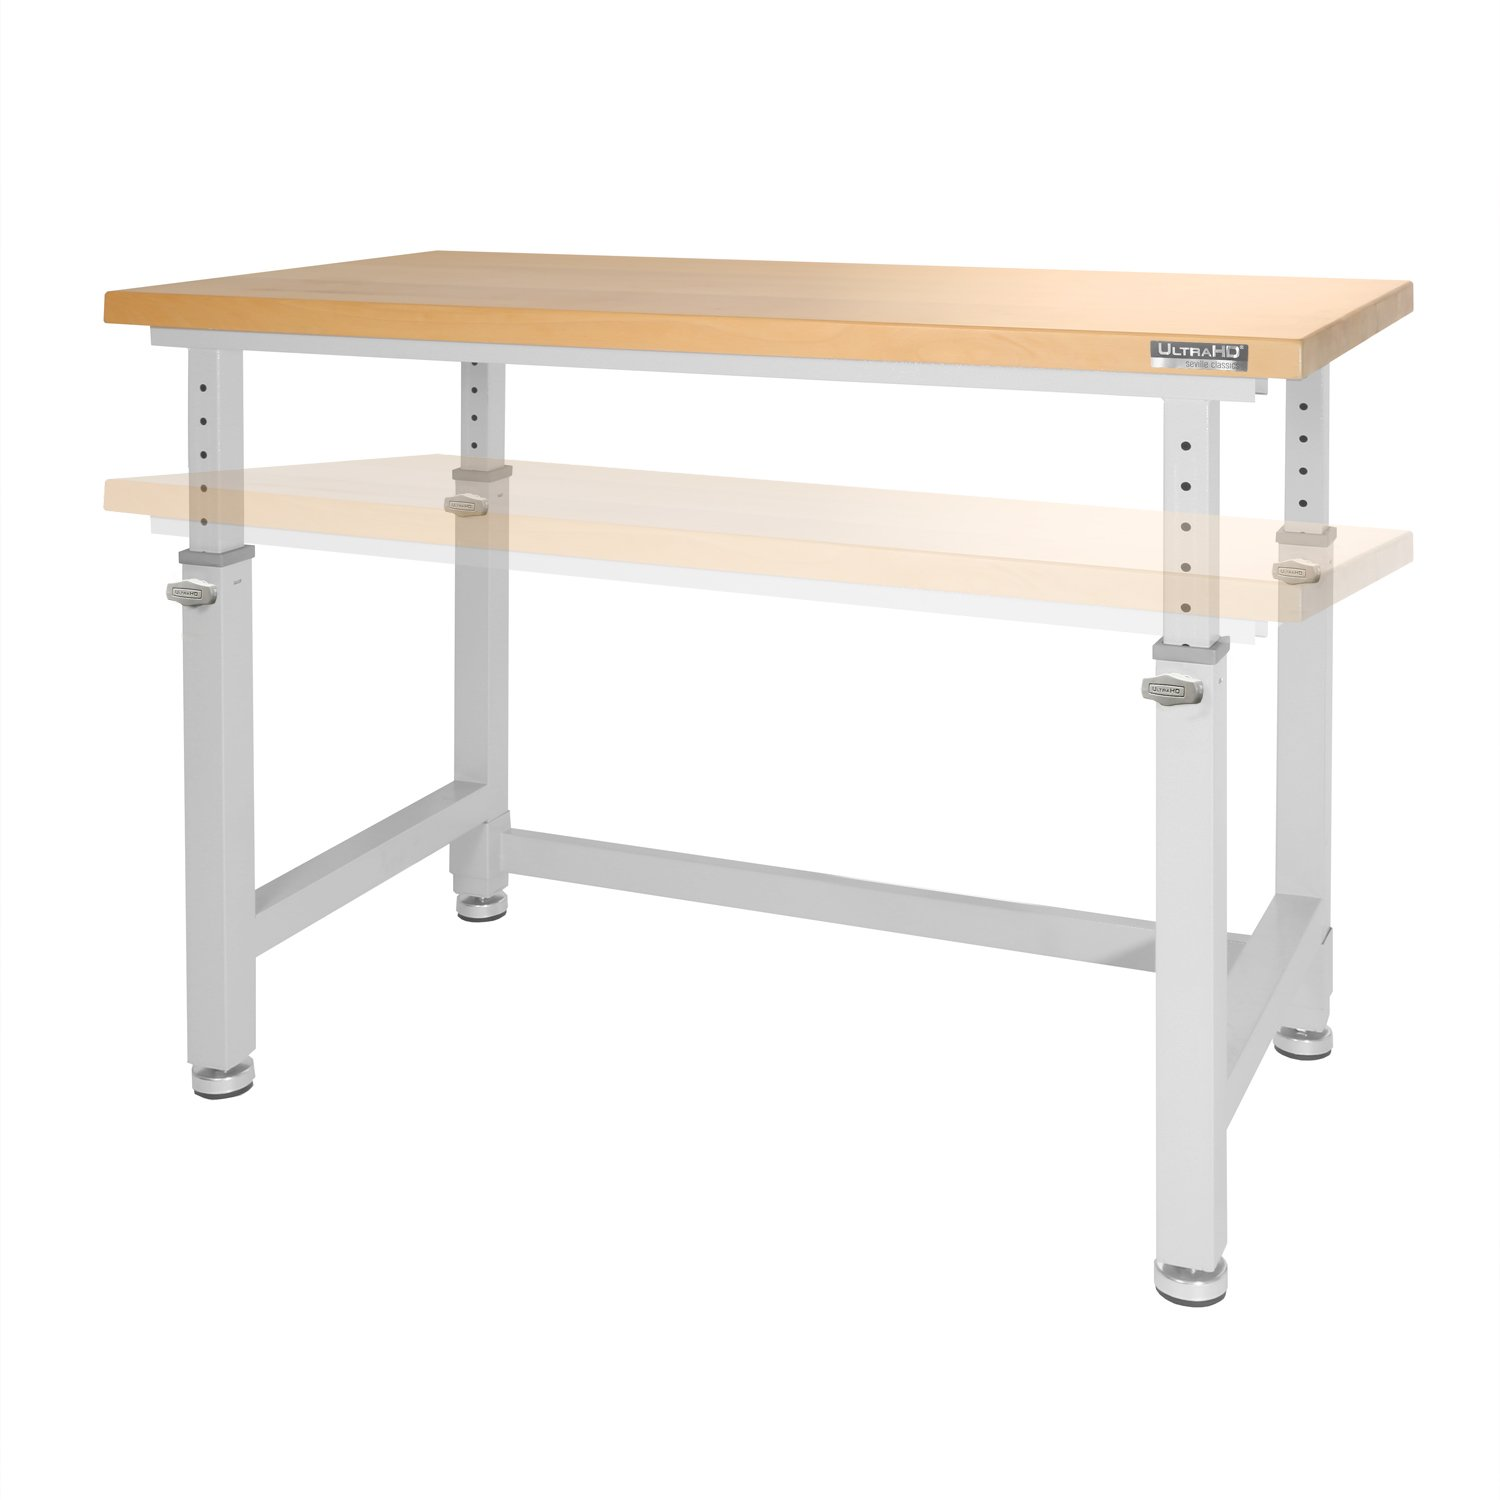 UltraHD Adjustable Height Heavy-Duty Wood Top Workbench, 48'' x 24'' by Seville Classics (Image #4)